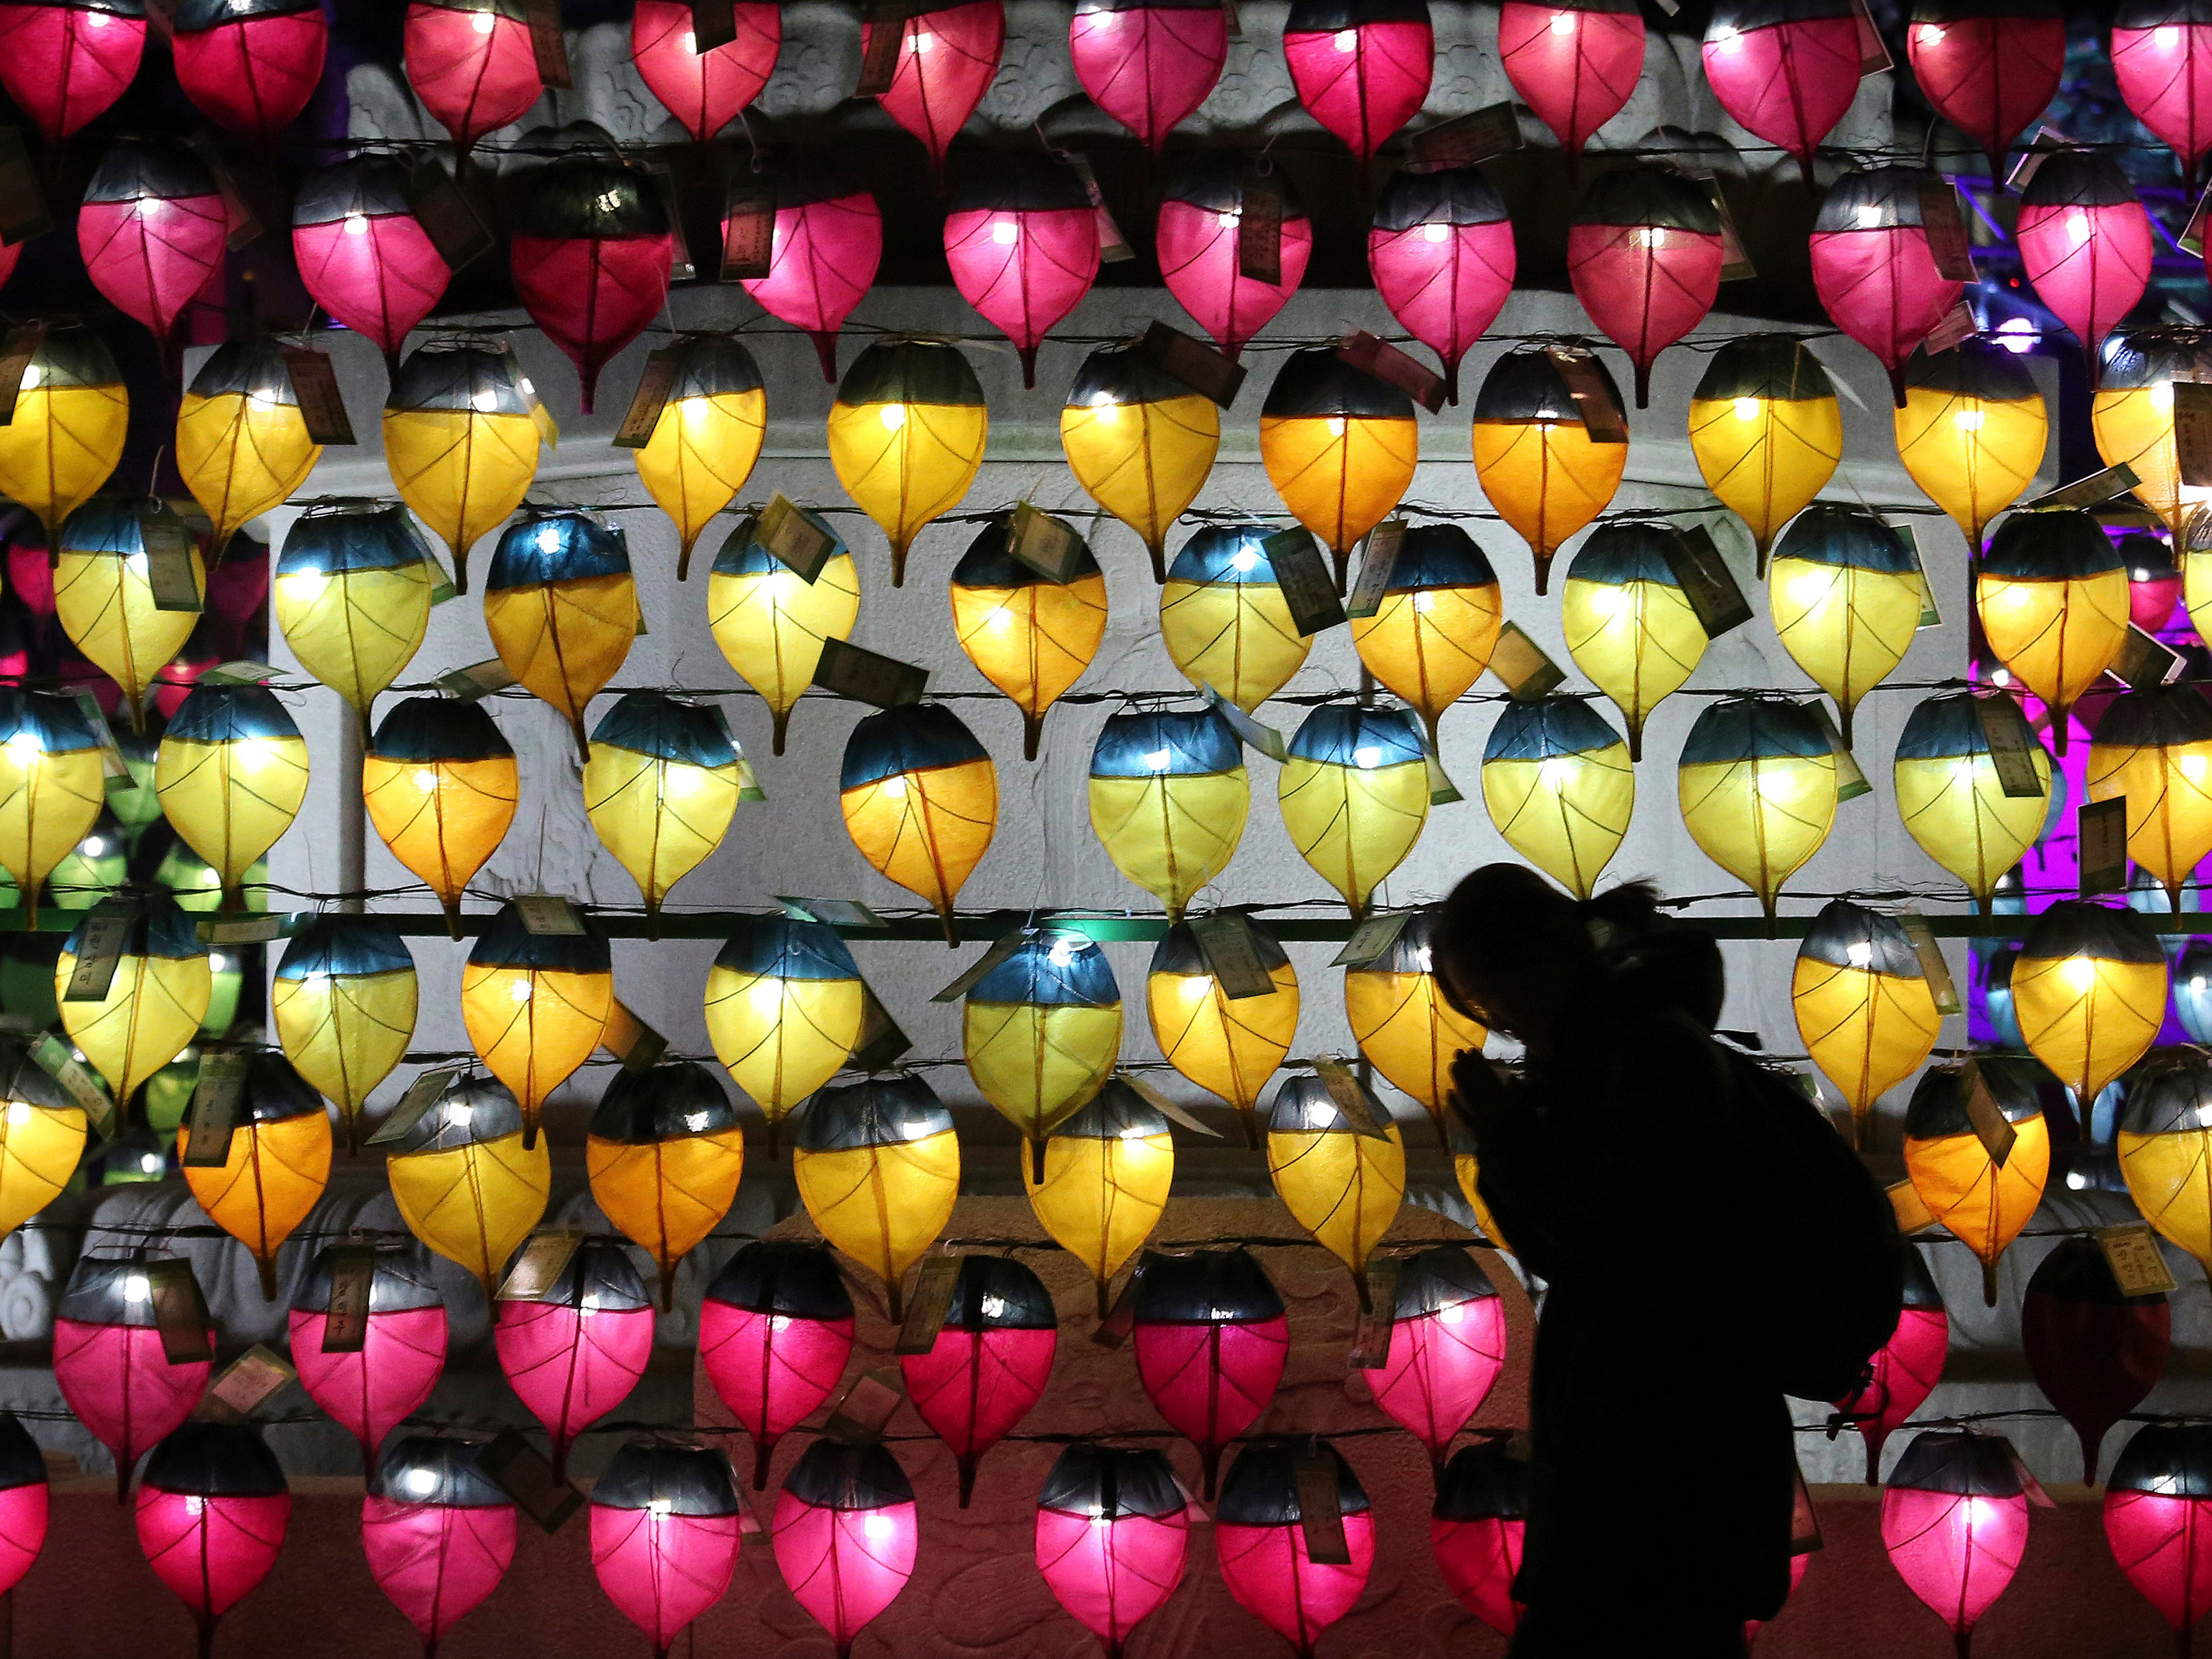 A woman prays in front of a wall of lanterns to celebrate the new year at the Jogyesa Buddhist temple in Seoul, South Korea, Monday, Dec. 31, 2018.